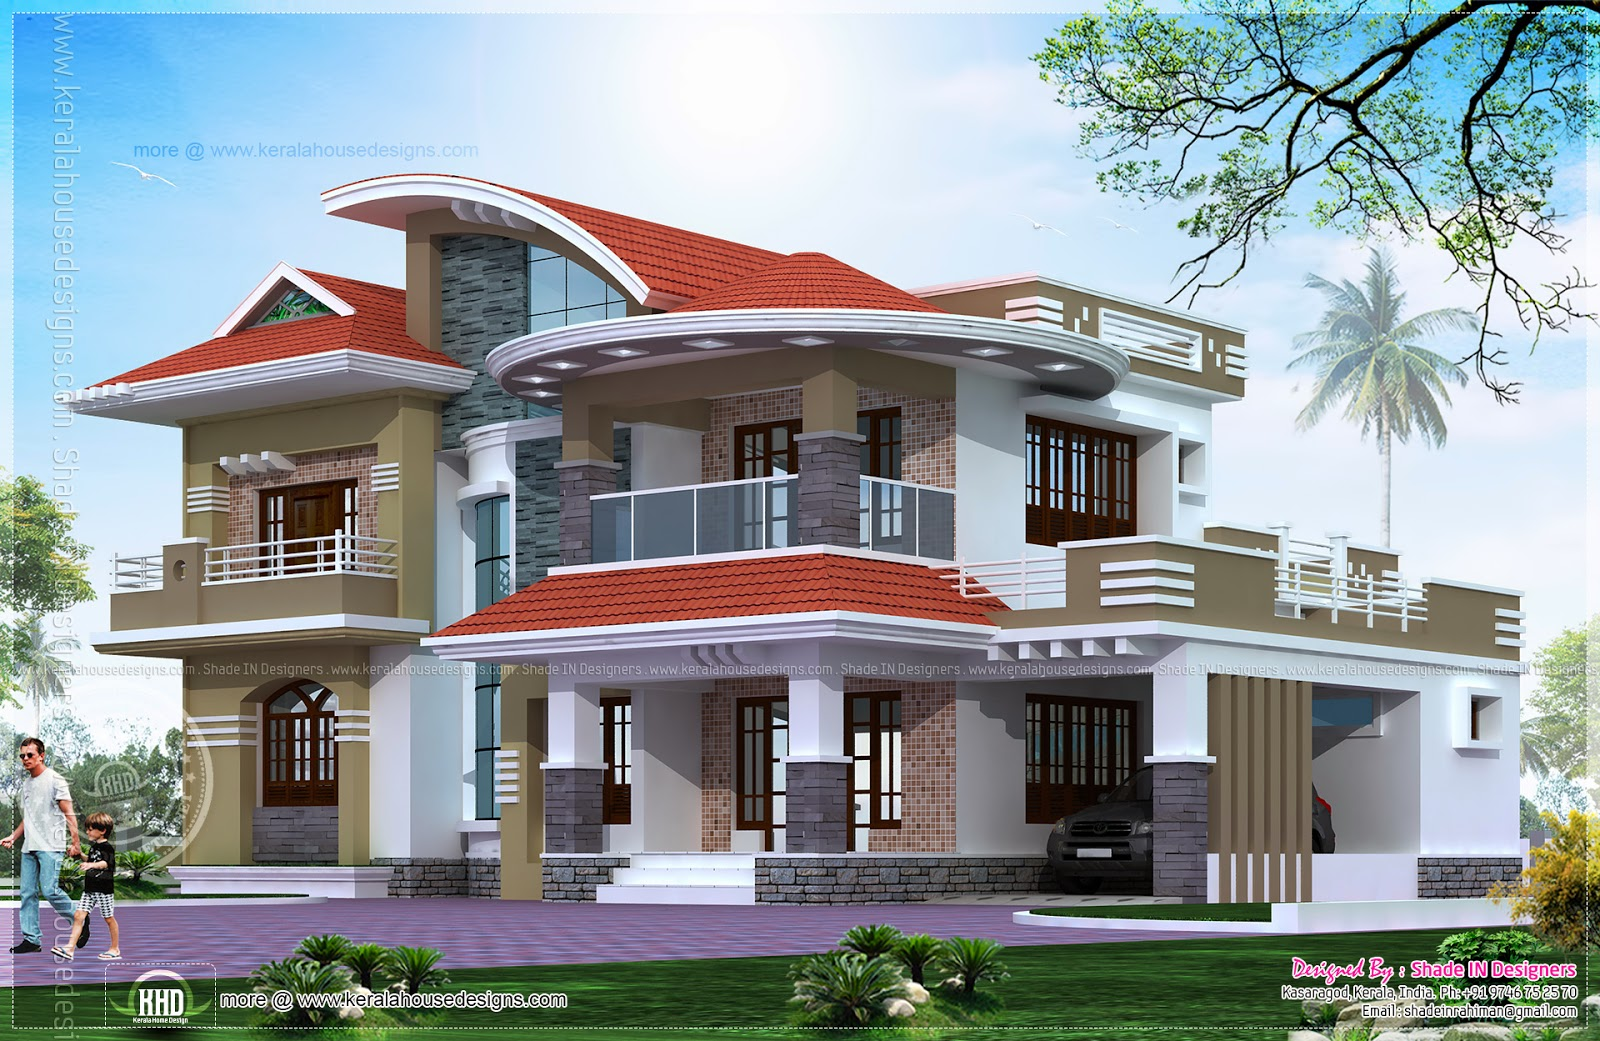 5 bedroom luxury house in kasaragod kerala home design for House plans in kerala with 2 bedrooms